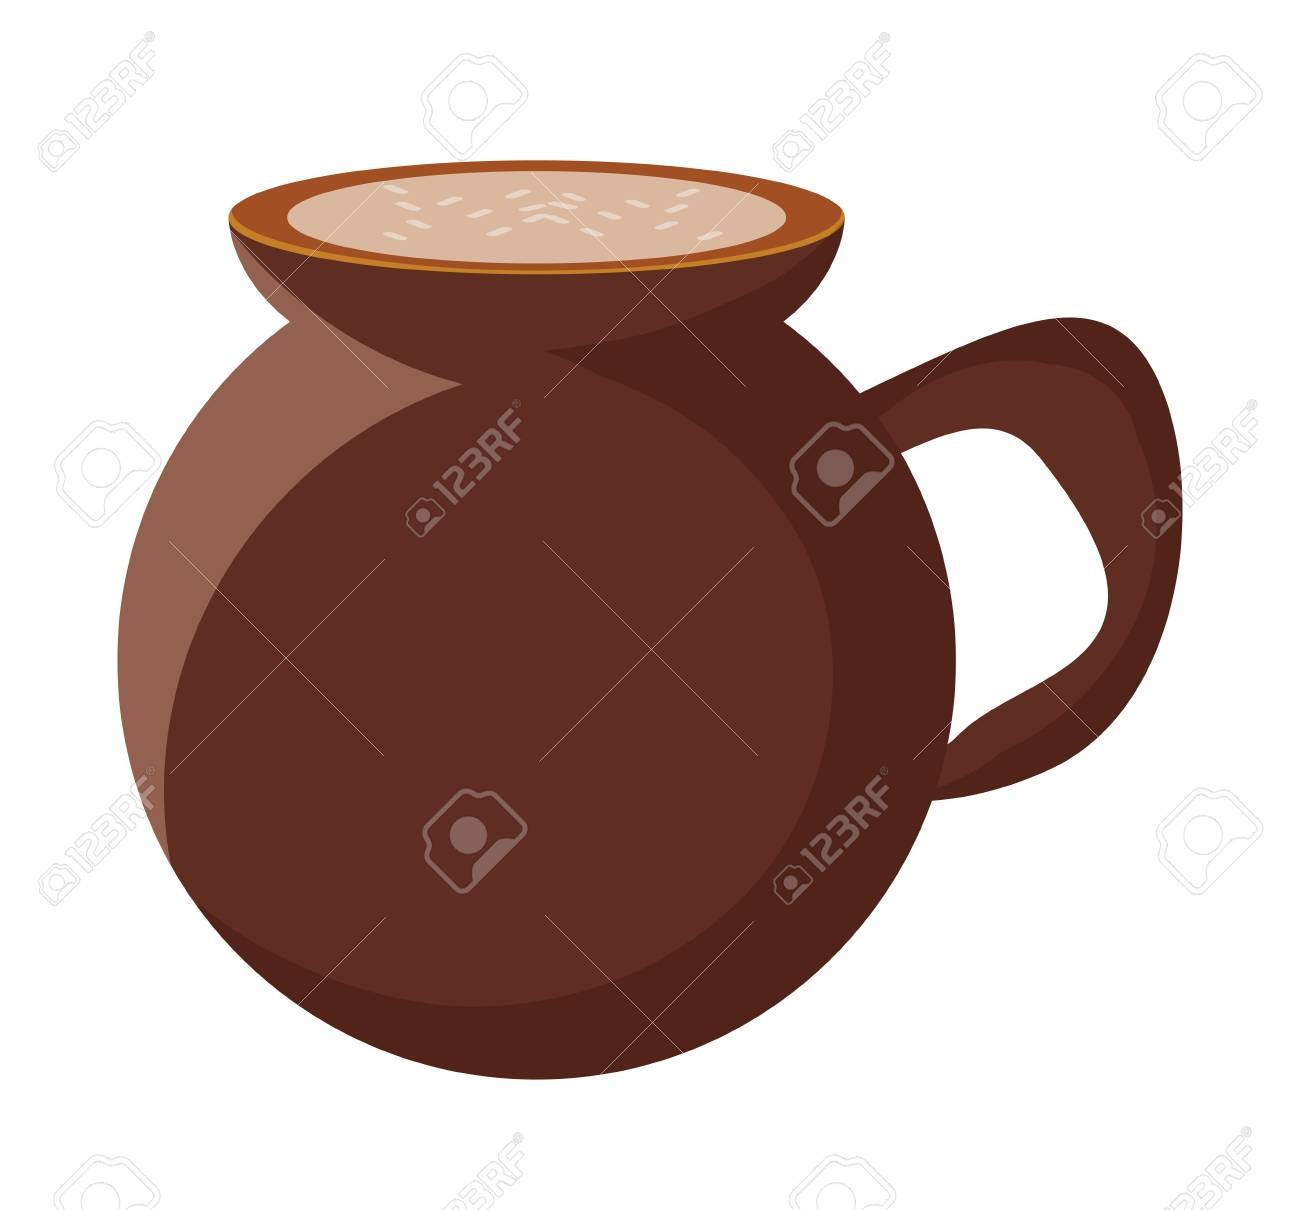 mexican coffee cafe de olla icon over white background, colorful design. vector illustration - 99248111